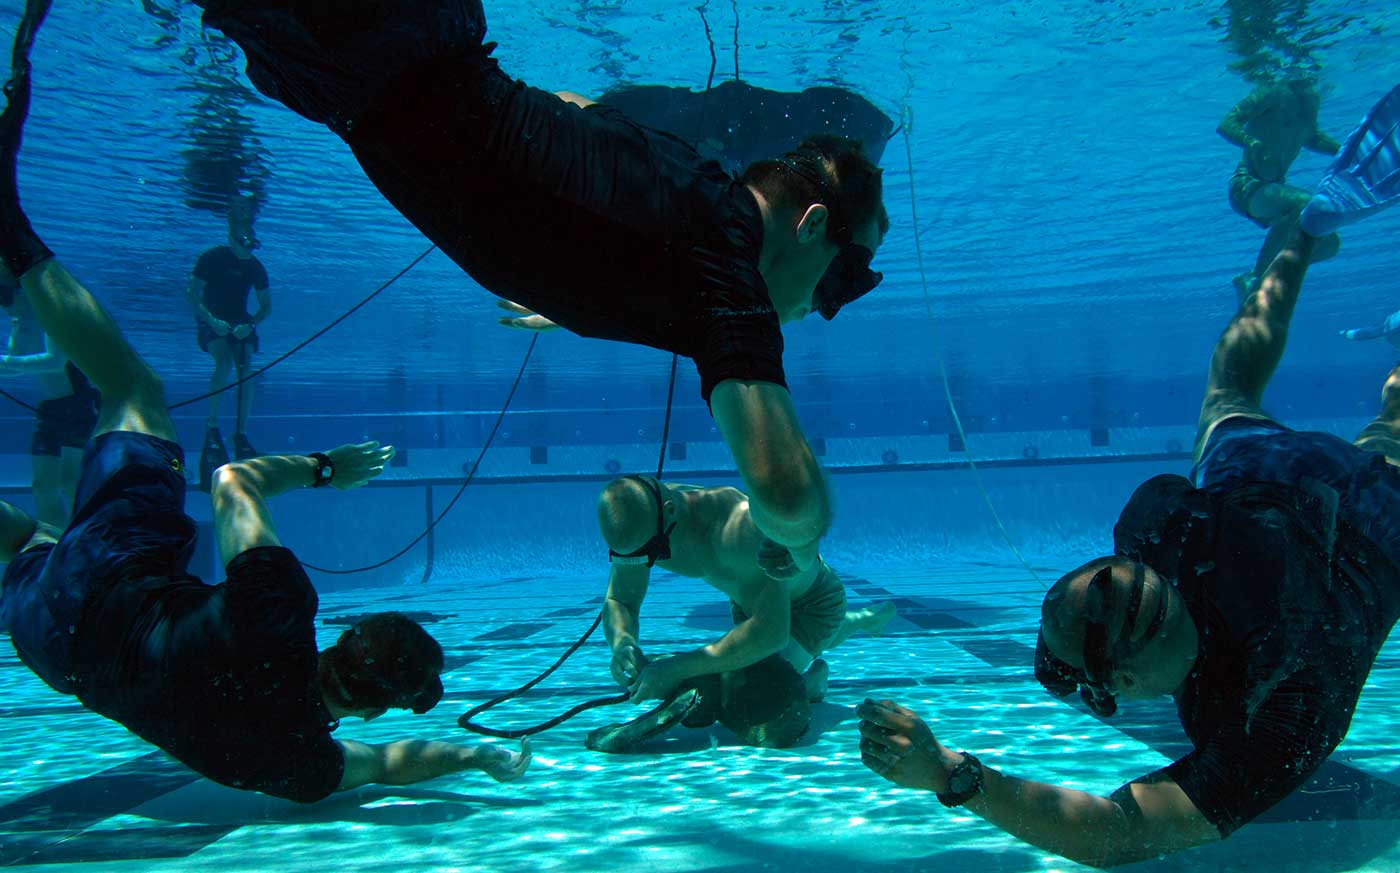 Instructors watch a tudent demonstrate knot-tying skills during water proficiency training.